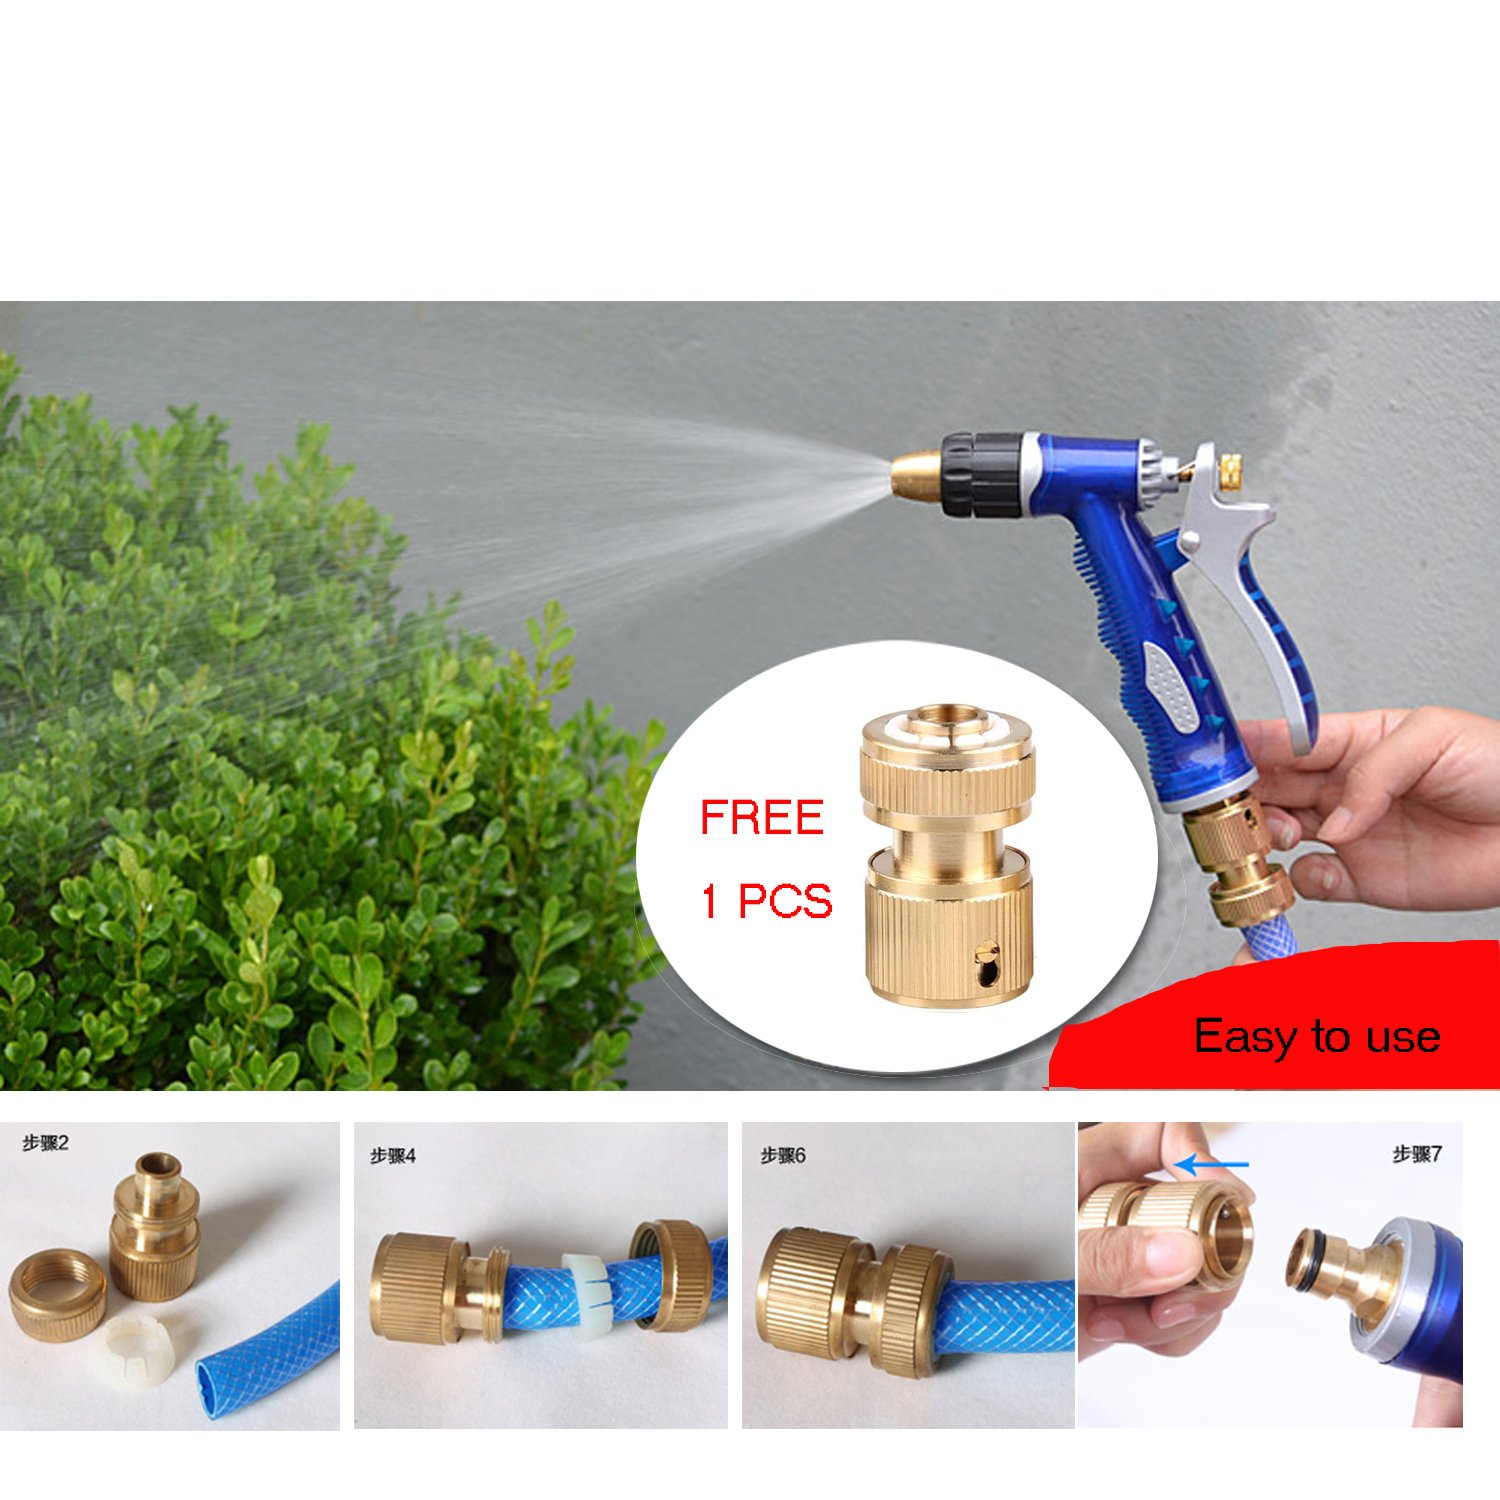 Car Cleaning Foam Gun Washing Foamaster Gun Water Soap Sprayer (Blue-Bi)